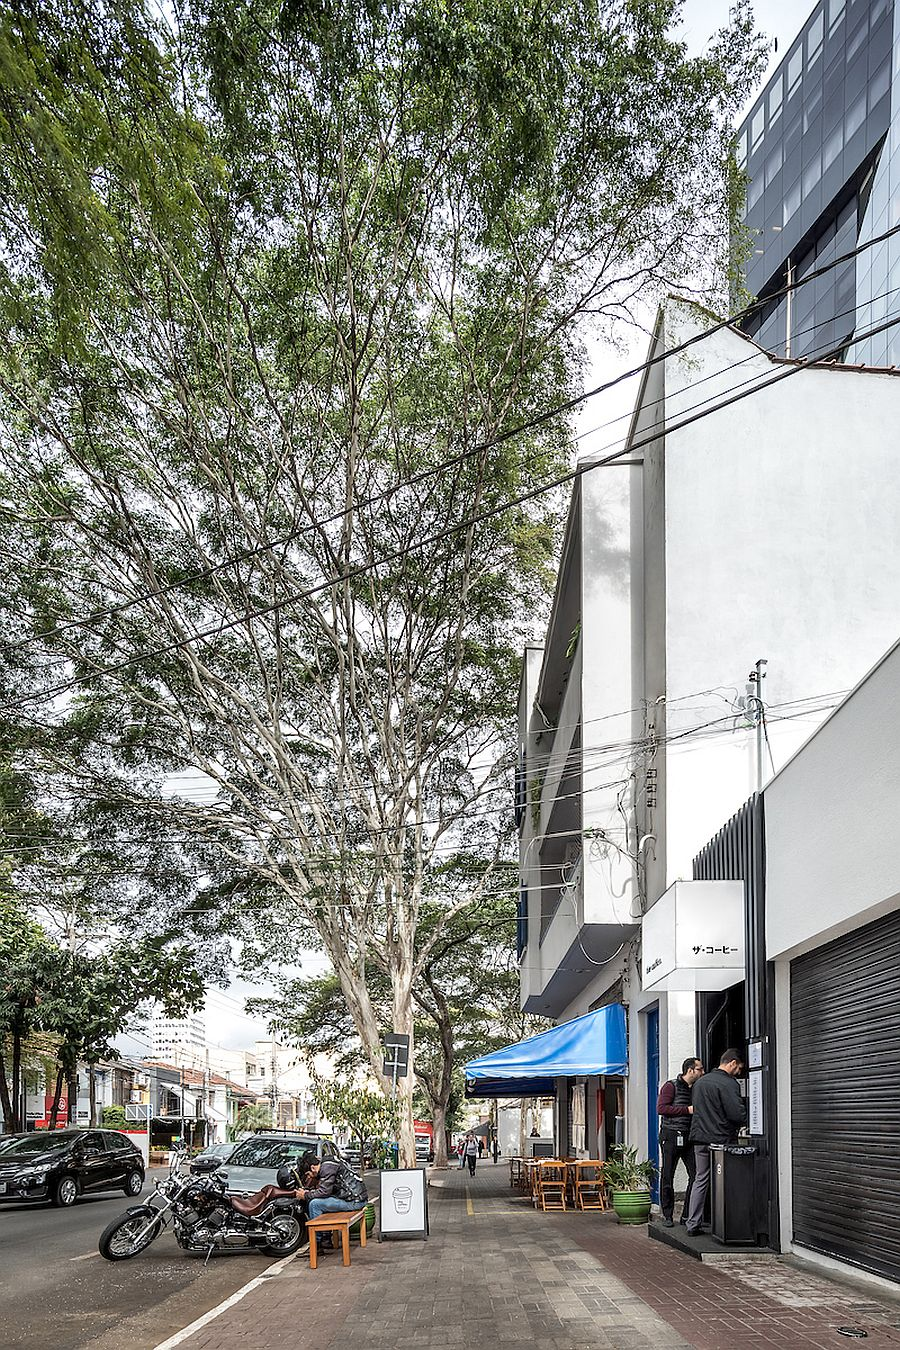 Design-of-the-modern-coffee-shop-in-Brazil-maxmizes-space-in-style